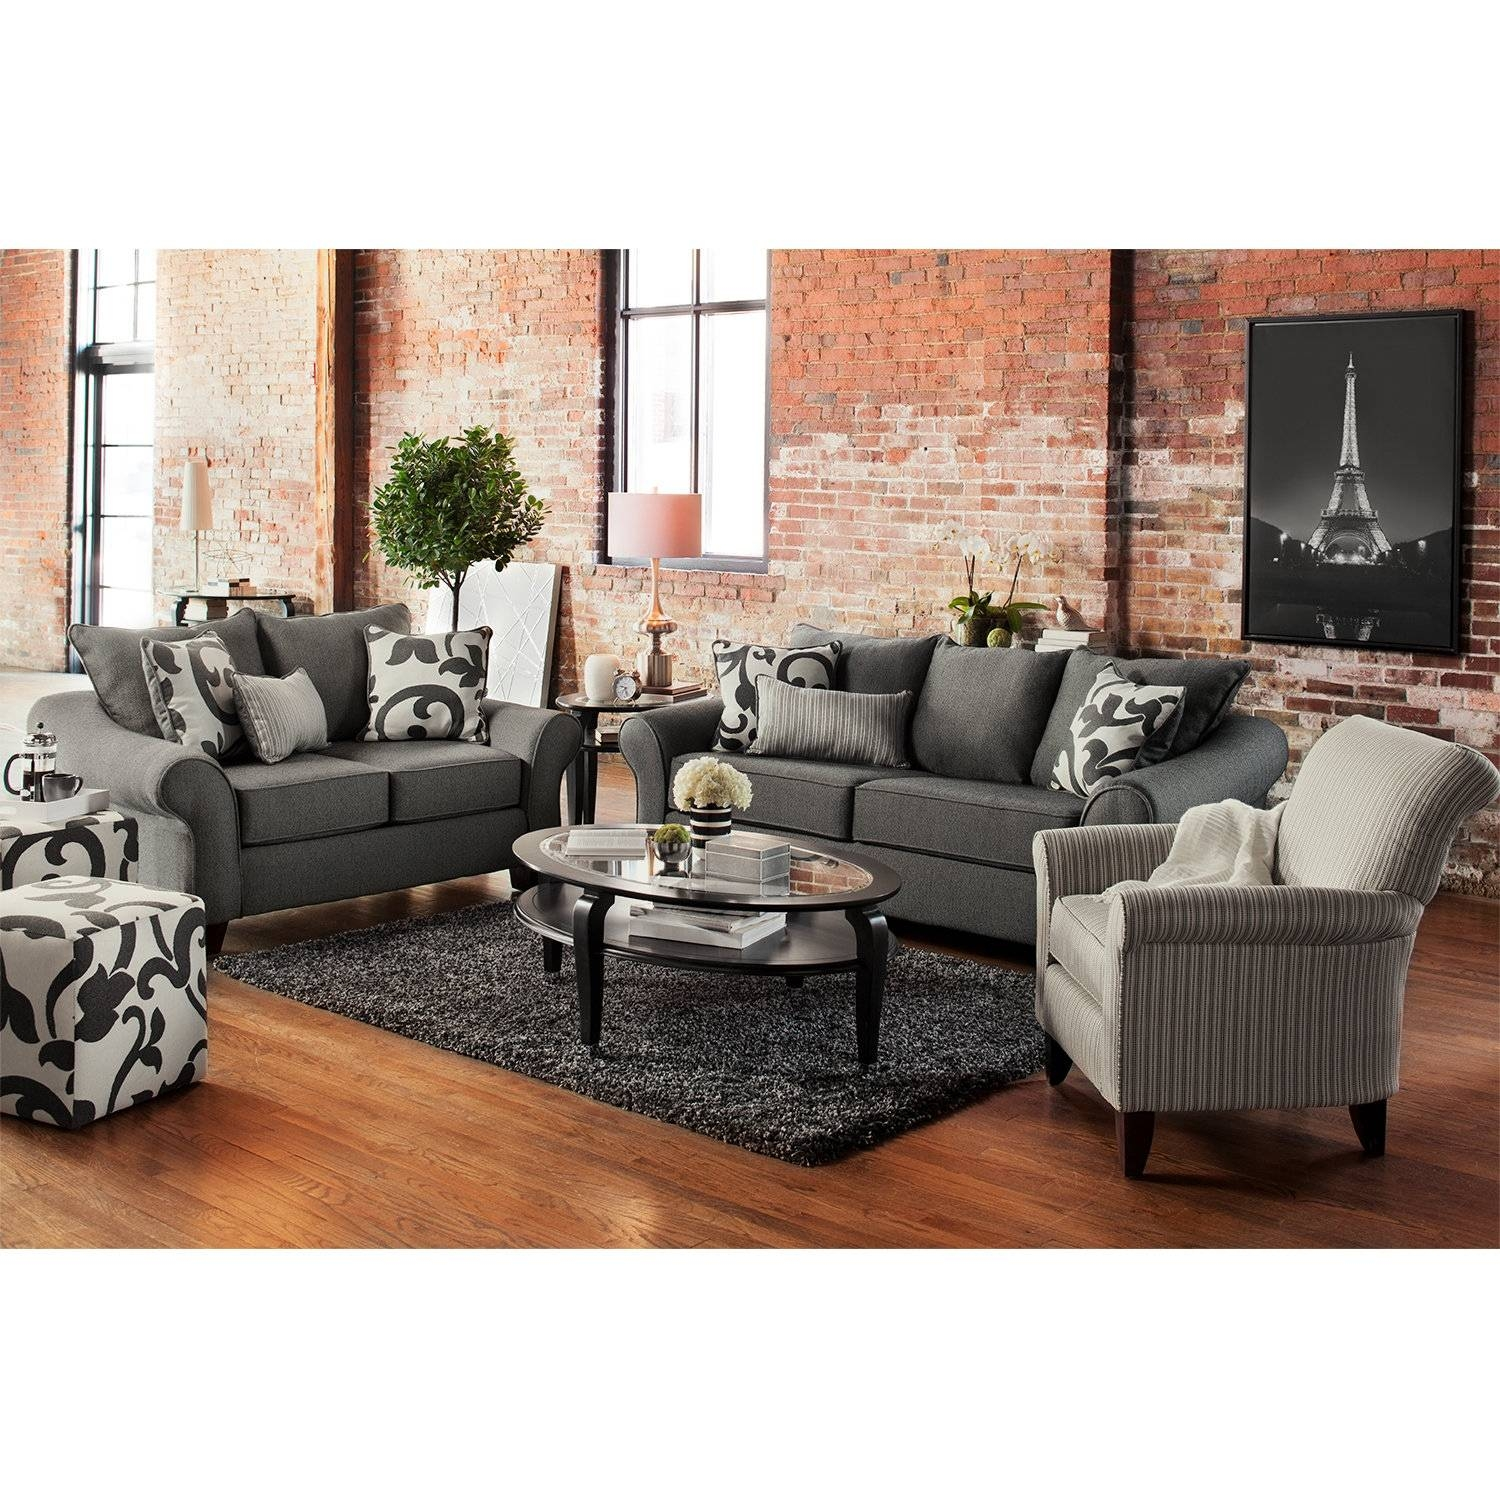 Colette Sofa, Loveseat And Accent Chair Set – Gray | American With Regard To Sofa Loveseat And Chair Set (View 11 of 30)